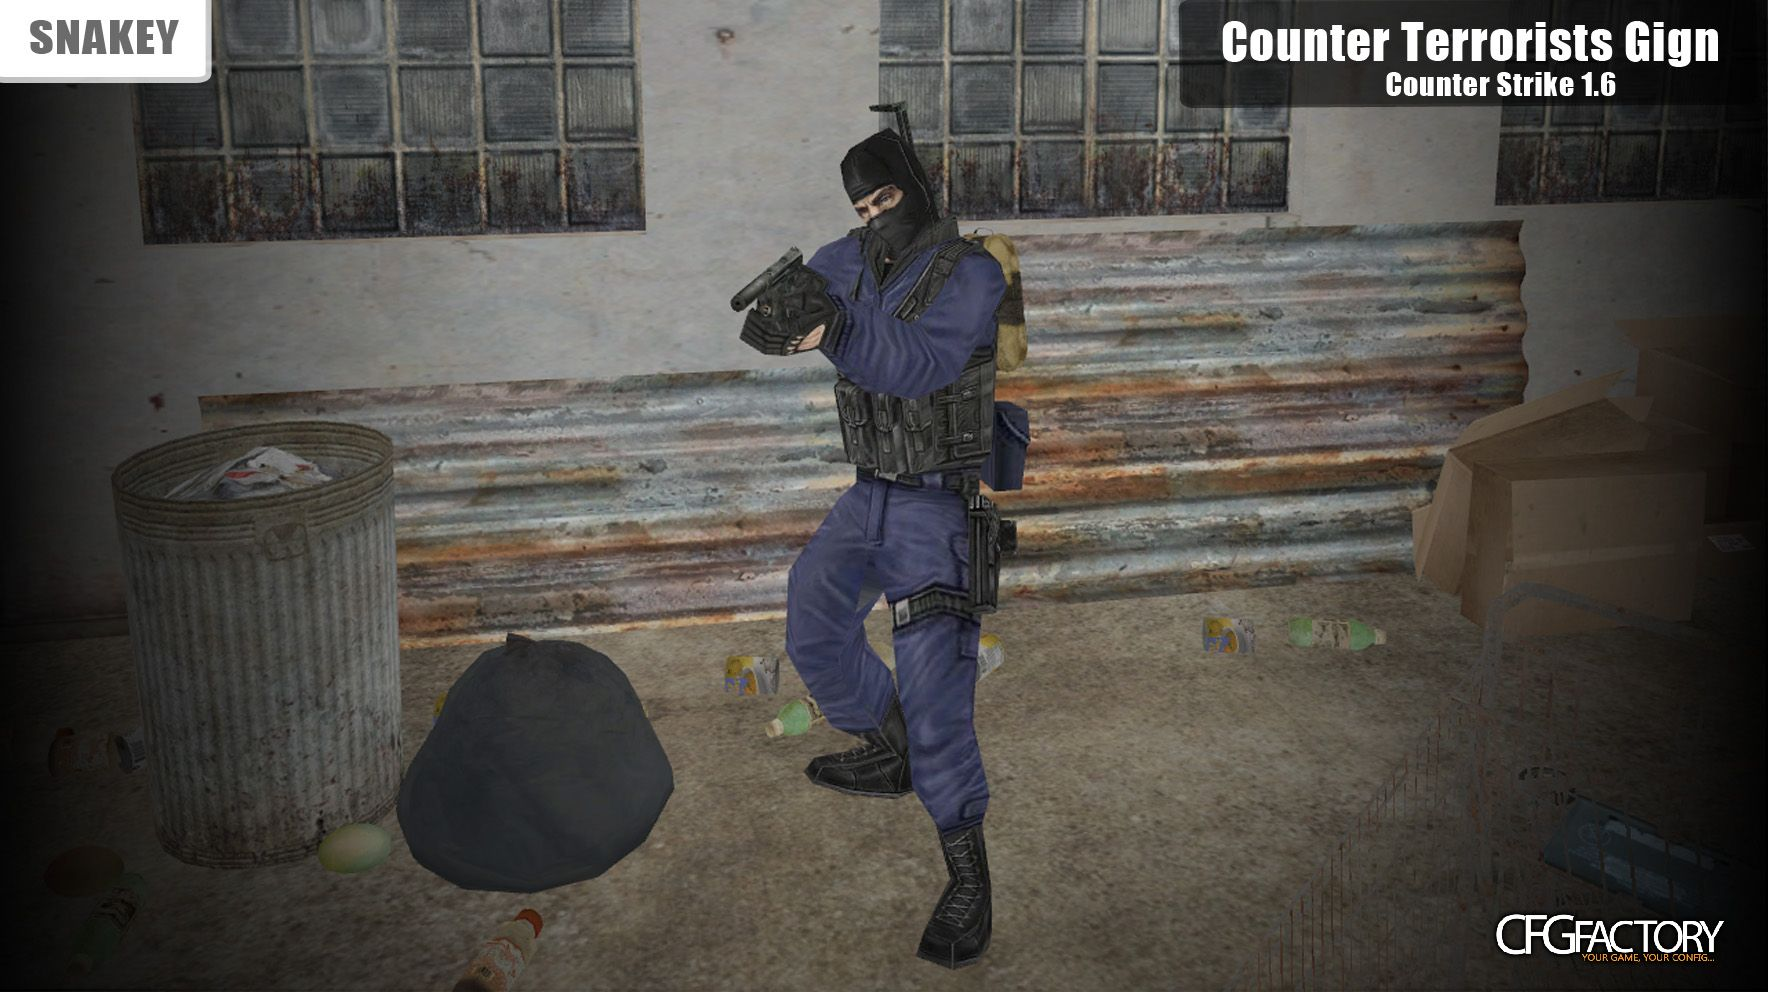 cod4, custom models, counter terrorists gign, snakey